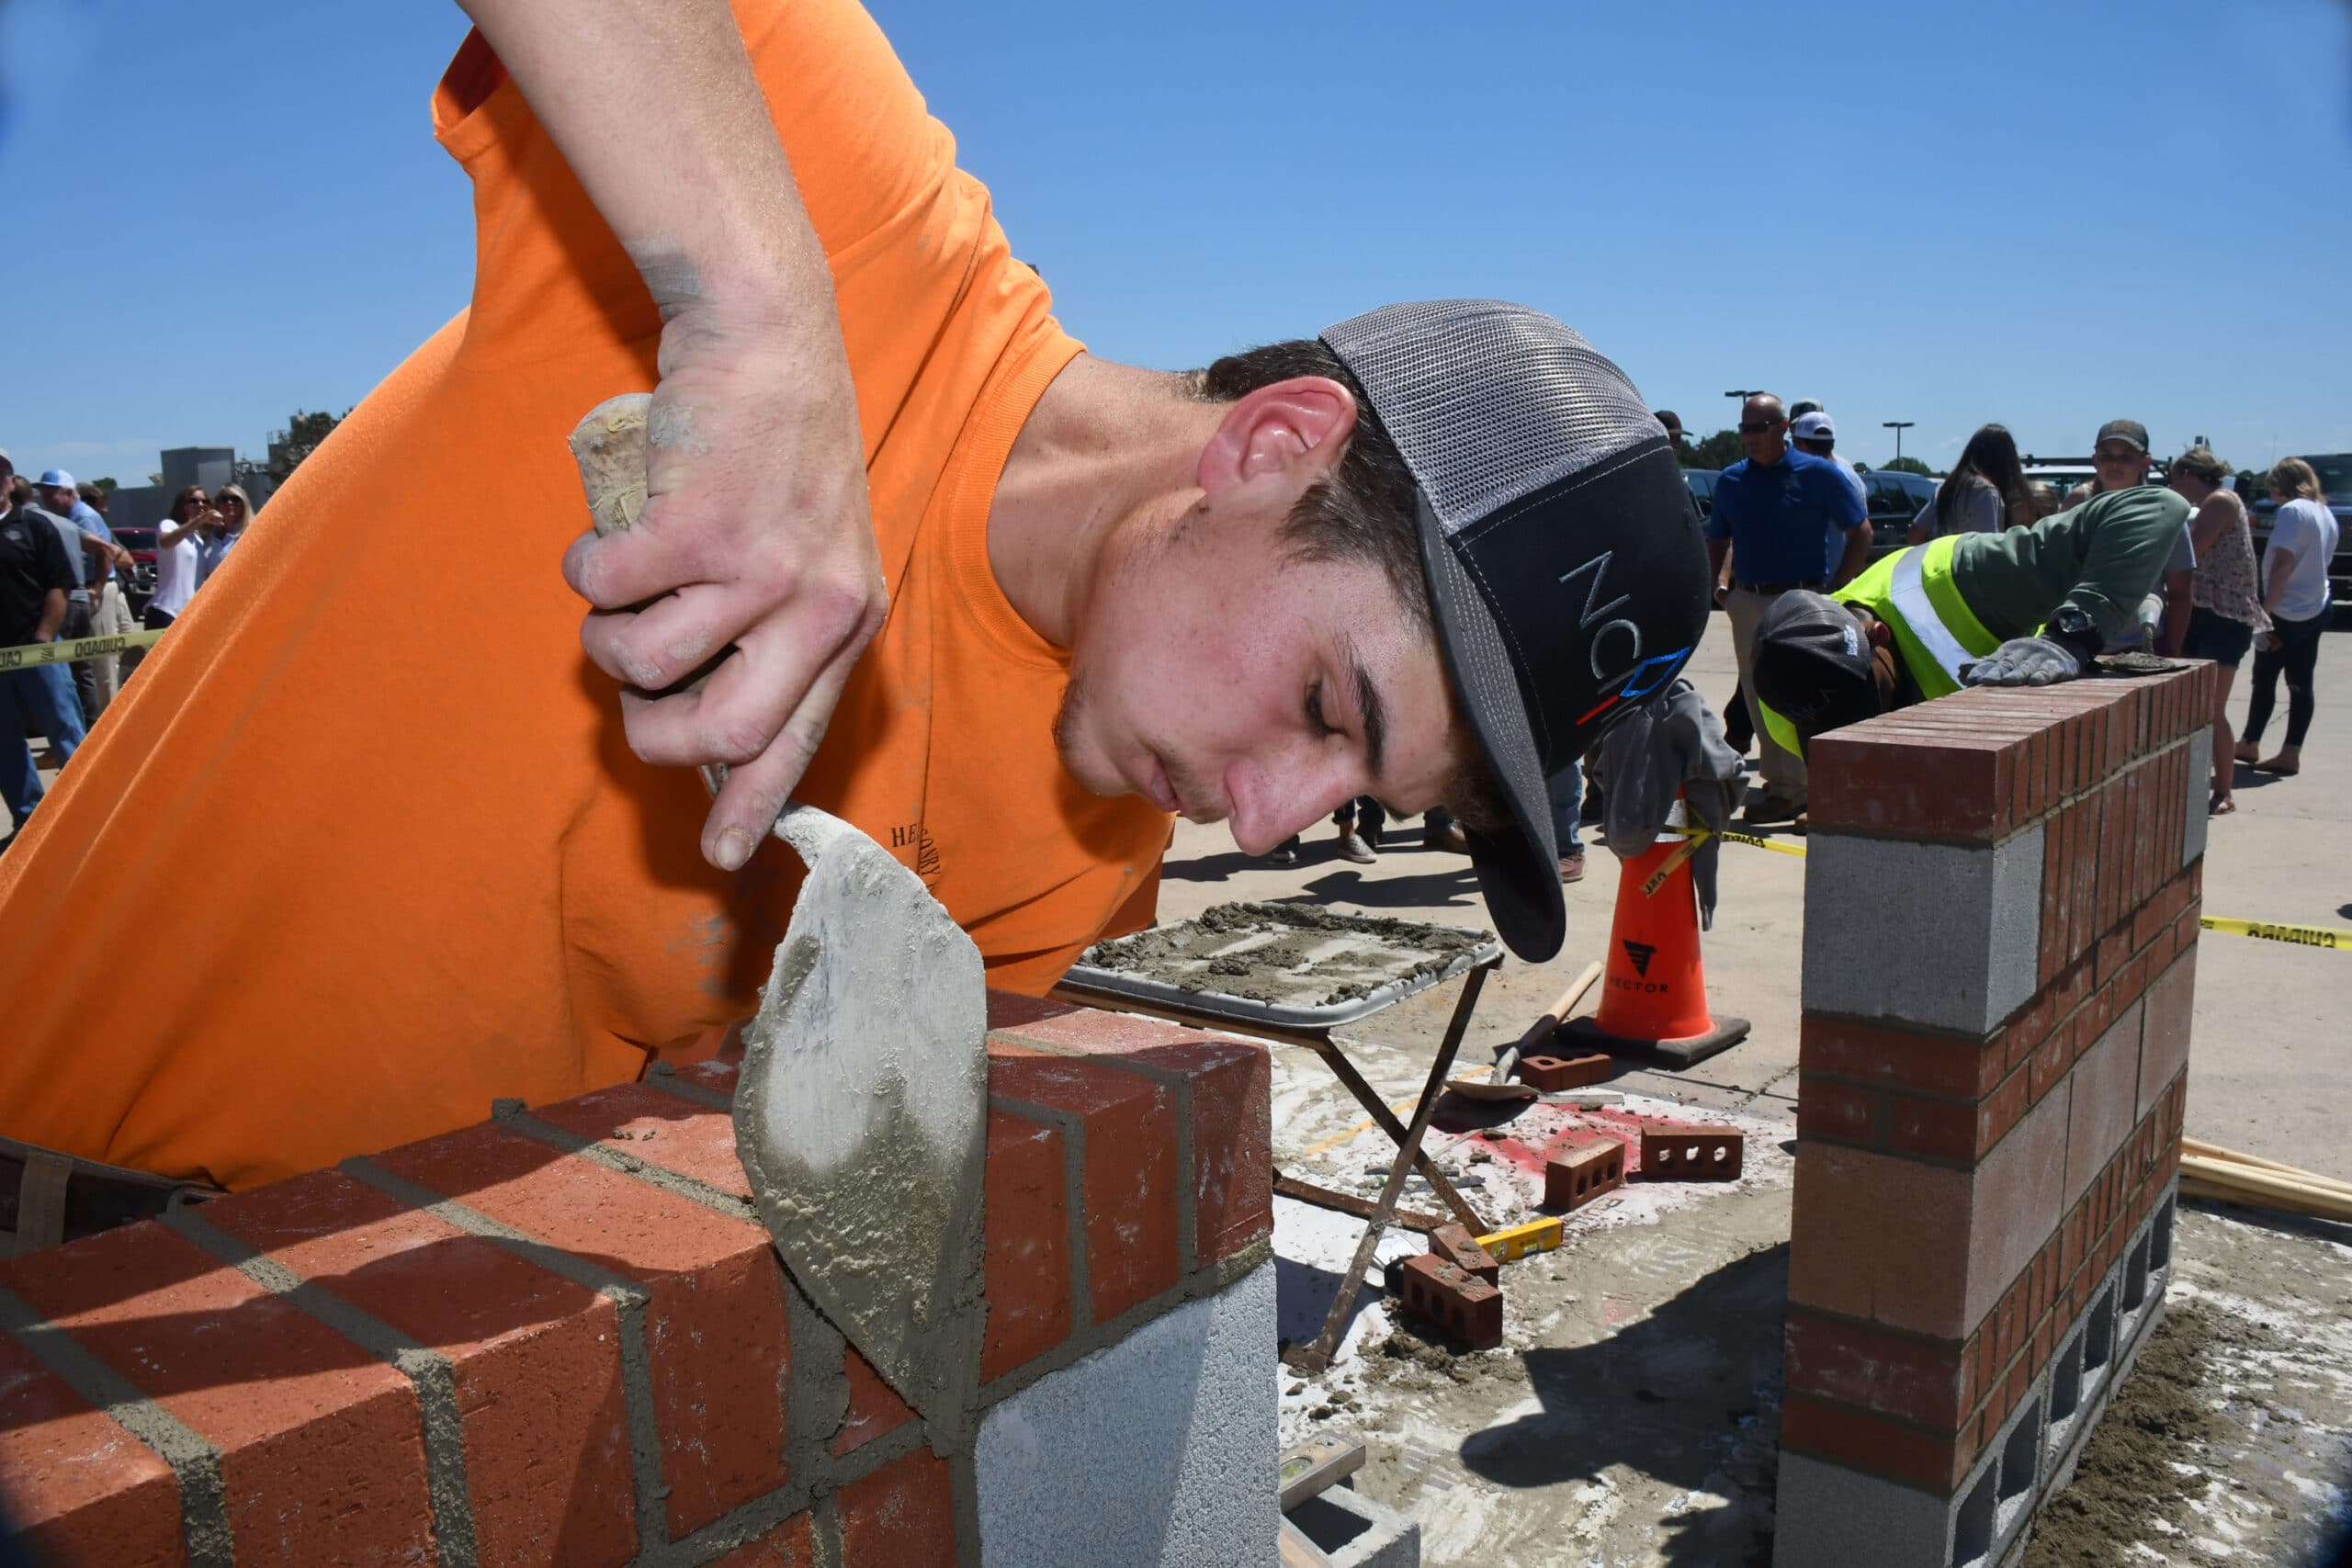 rant Helms puts the finishing touches on his contest project at the Annual NCMCA Samuel A. McGee Masonry Apprentice Skills Contest